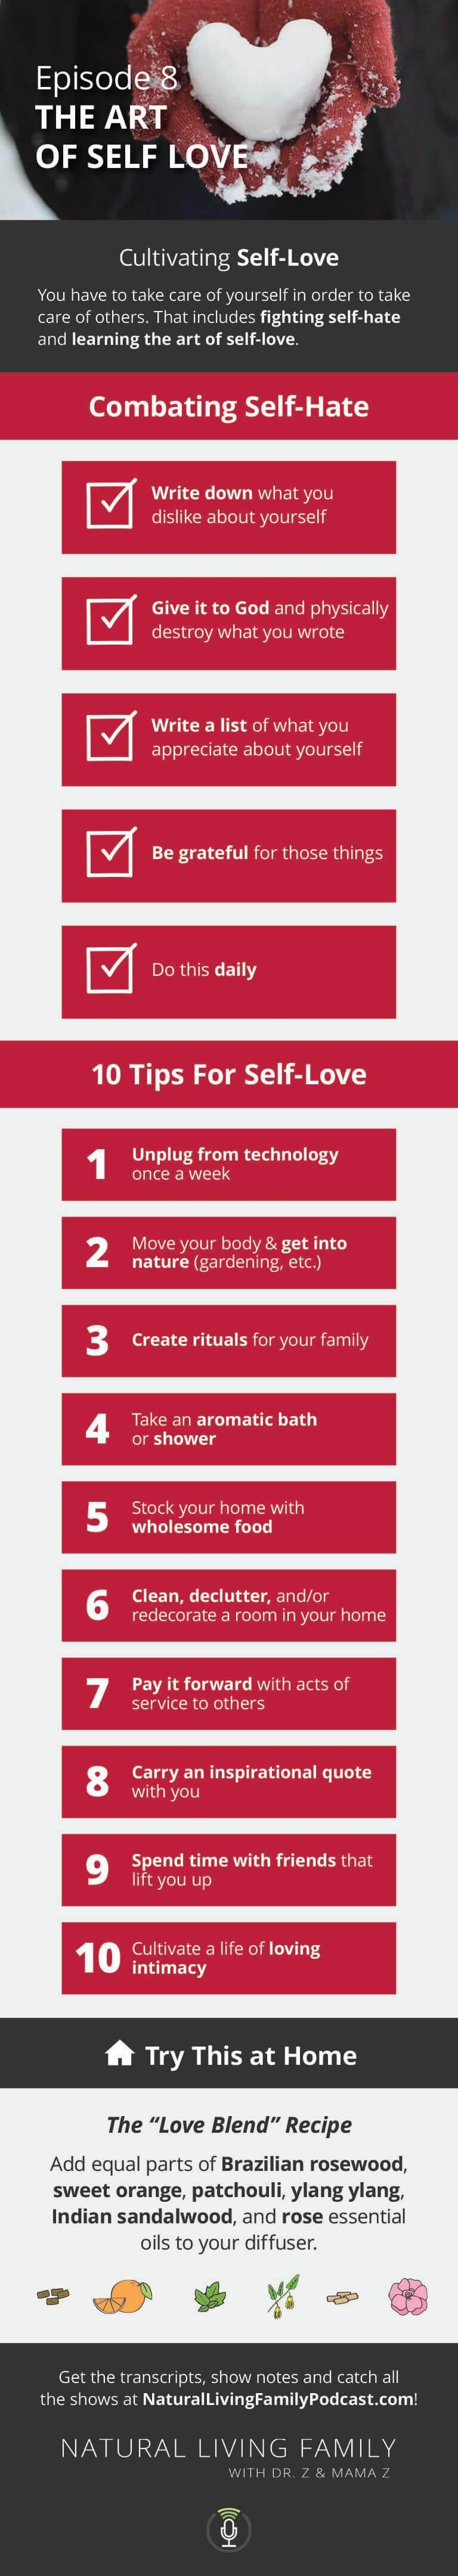 Digital Detox, Earthing & Family Traditions The Art of Self Love (Part 1) Natural Living Family Podcast Episode 8